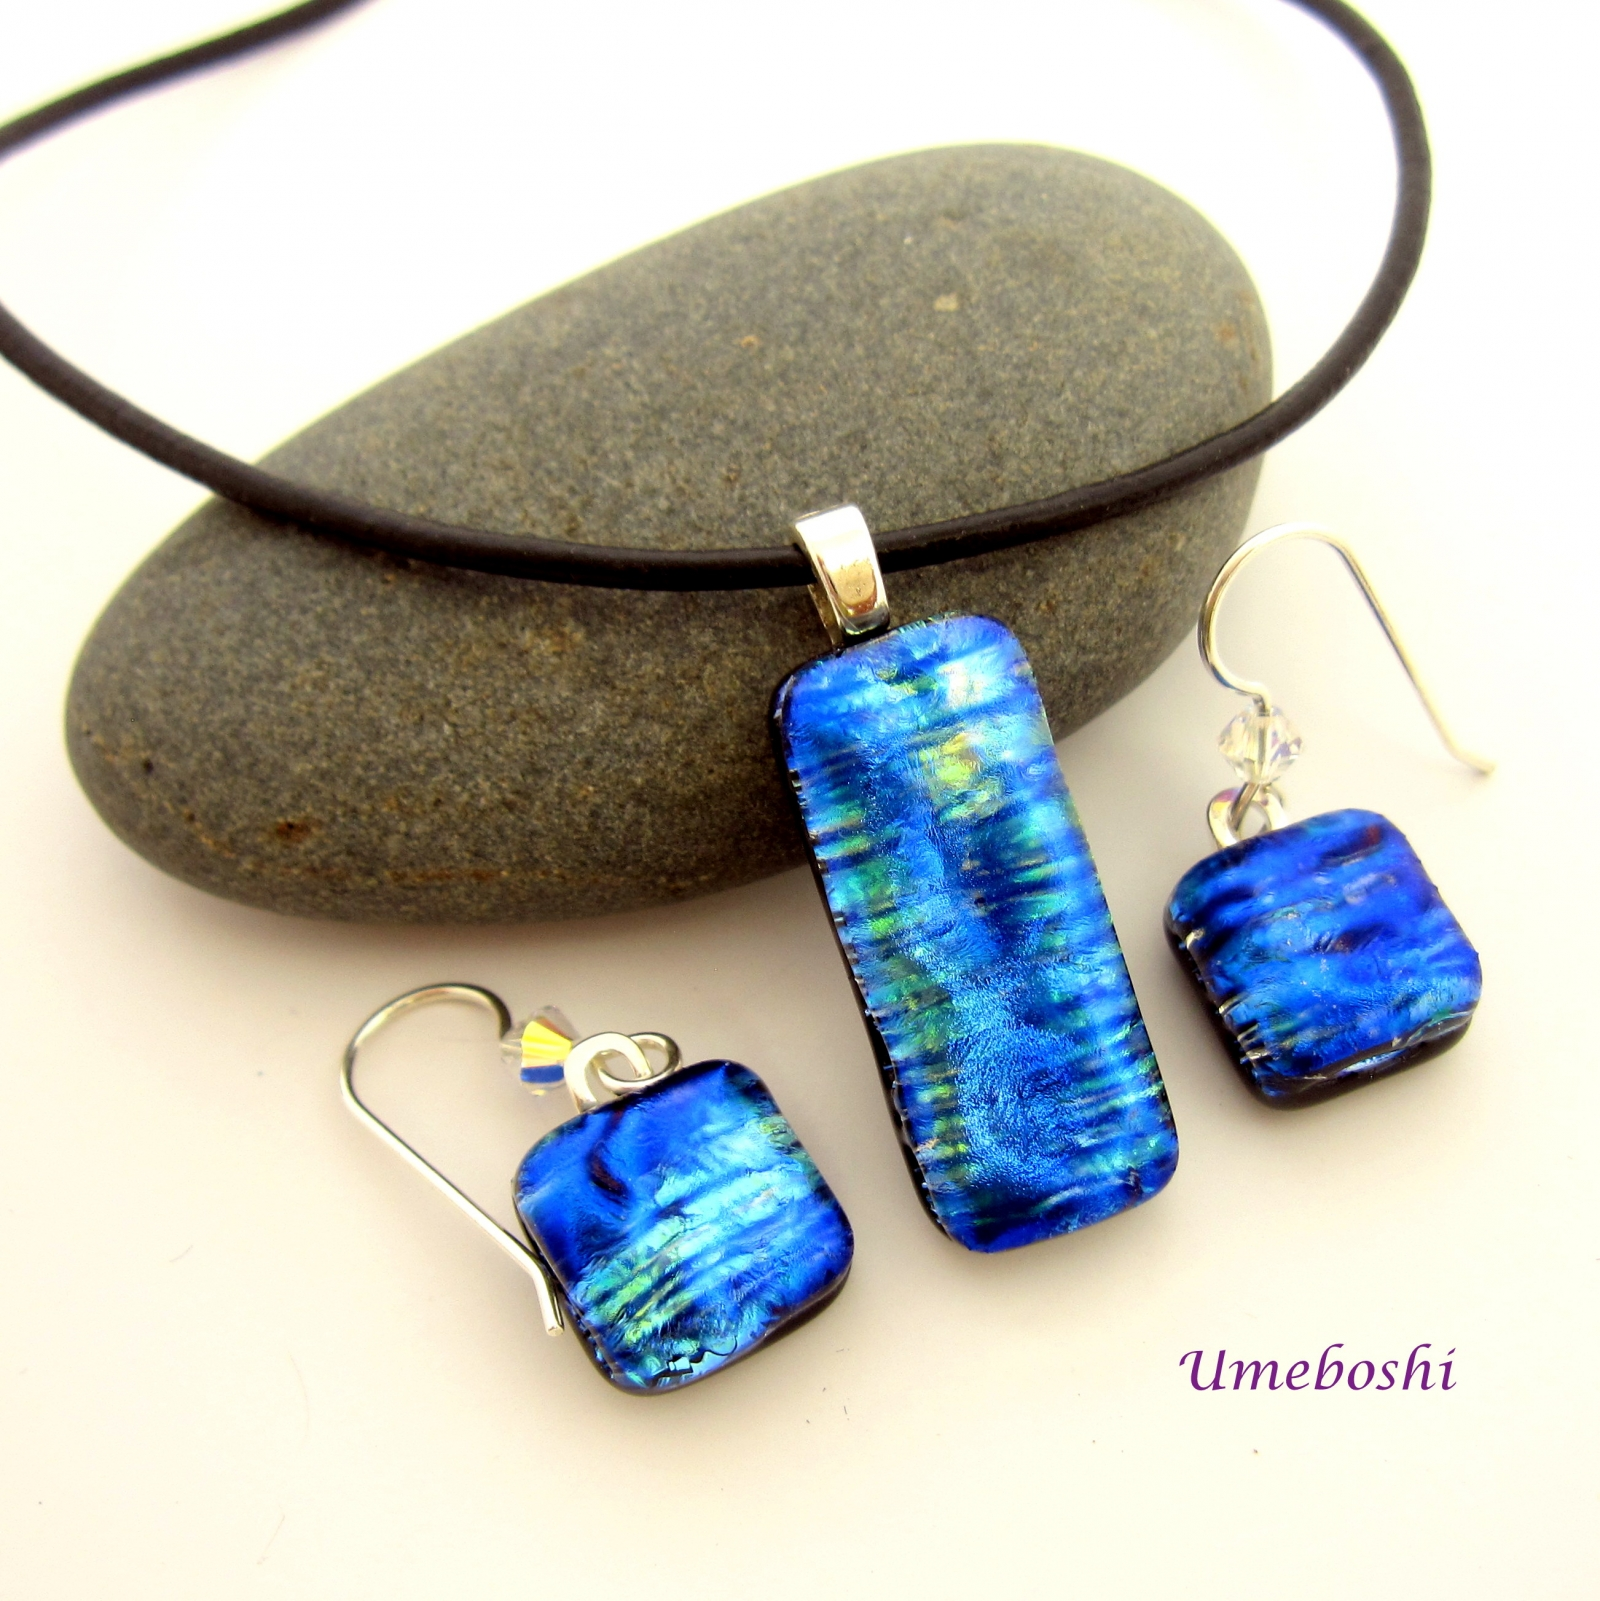 Fused Glass Jewelry Videos